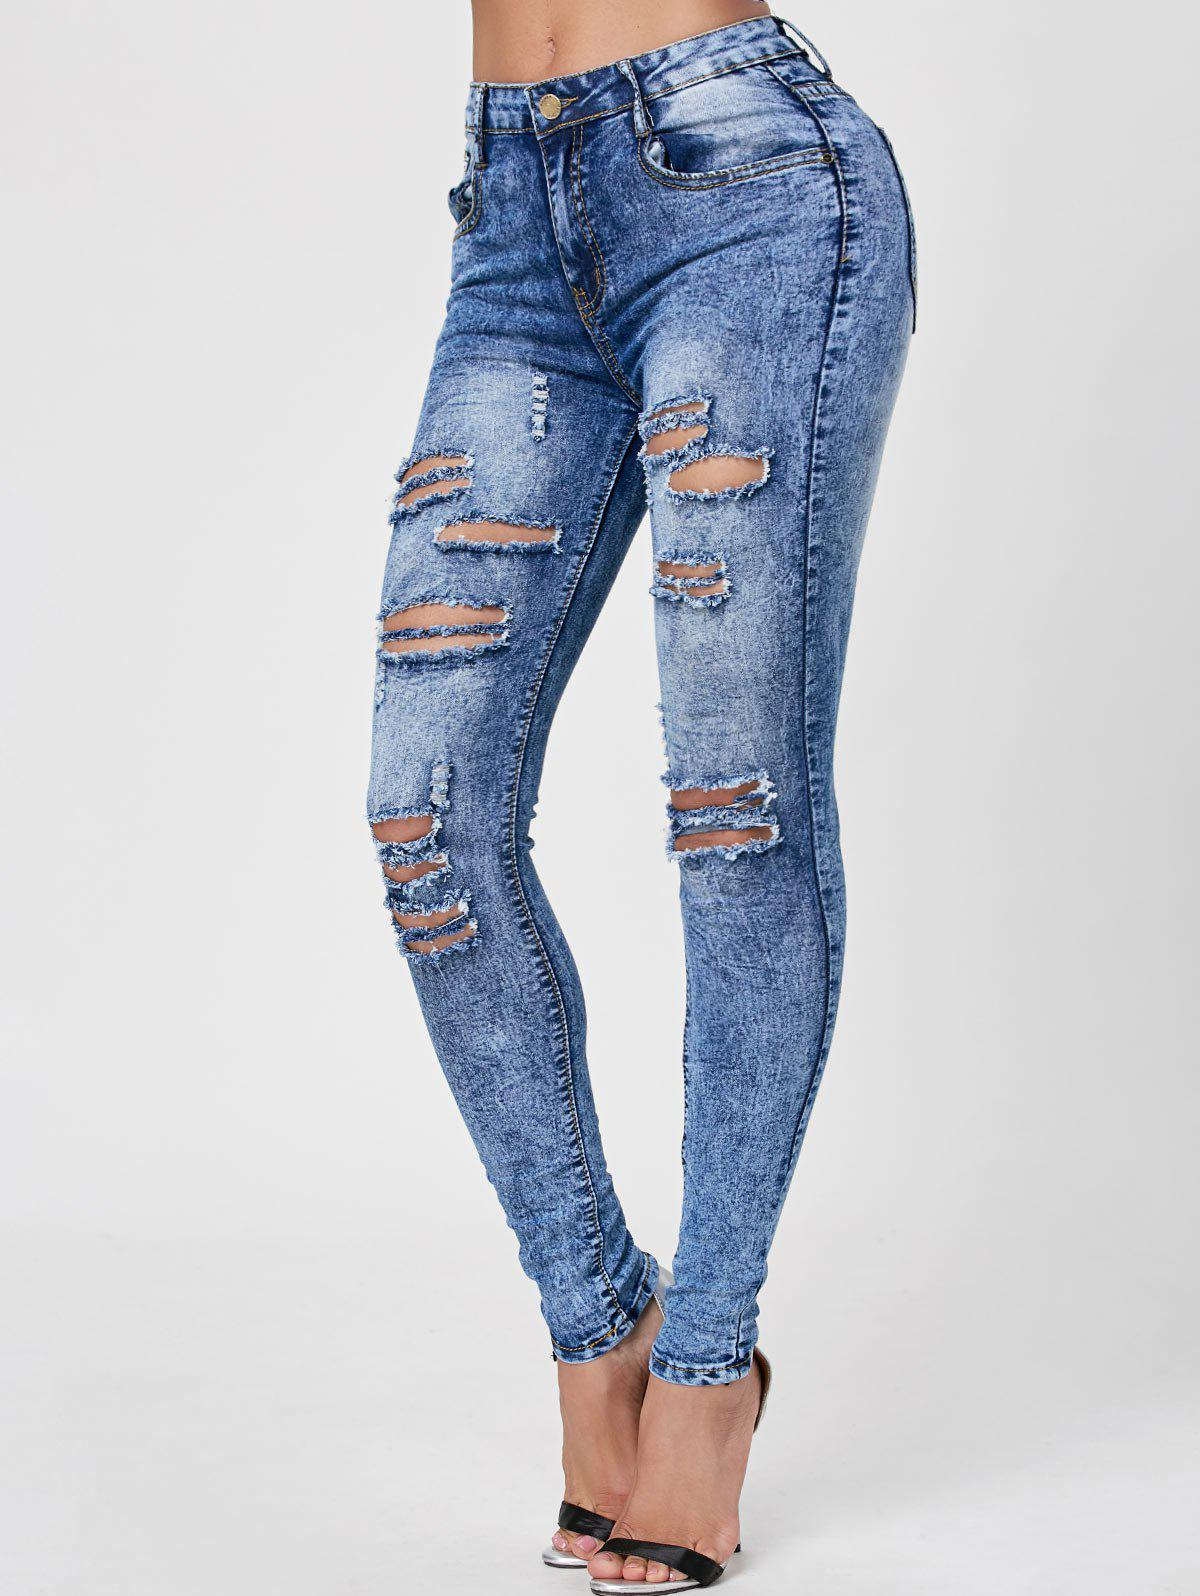 Skiny Acid Wash Ripped JeansWOMEN<br><br>Size: 2XL; Color: DENIM BLUE; Material: Cotton; Length: Normal; Fabric Type: Denim; Wash: Acid Washed; Fit Type: Skinny; Waist Type: Low; Embellishment: Pockets; Elasticity: Elastic; Weight: 0.4000kg; Package Contents: 1 x Jeans;